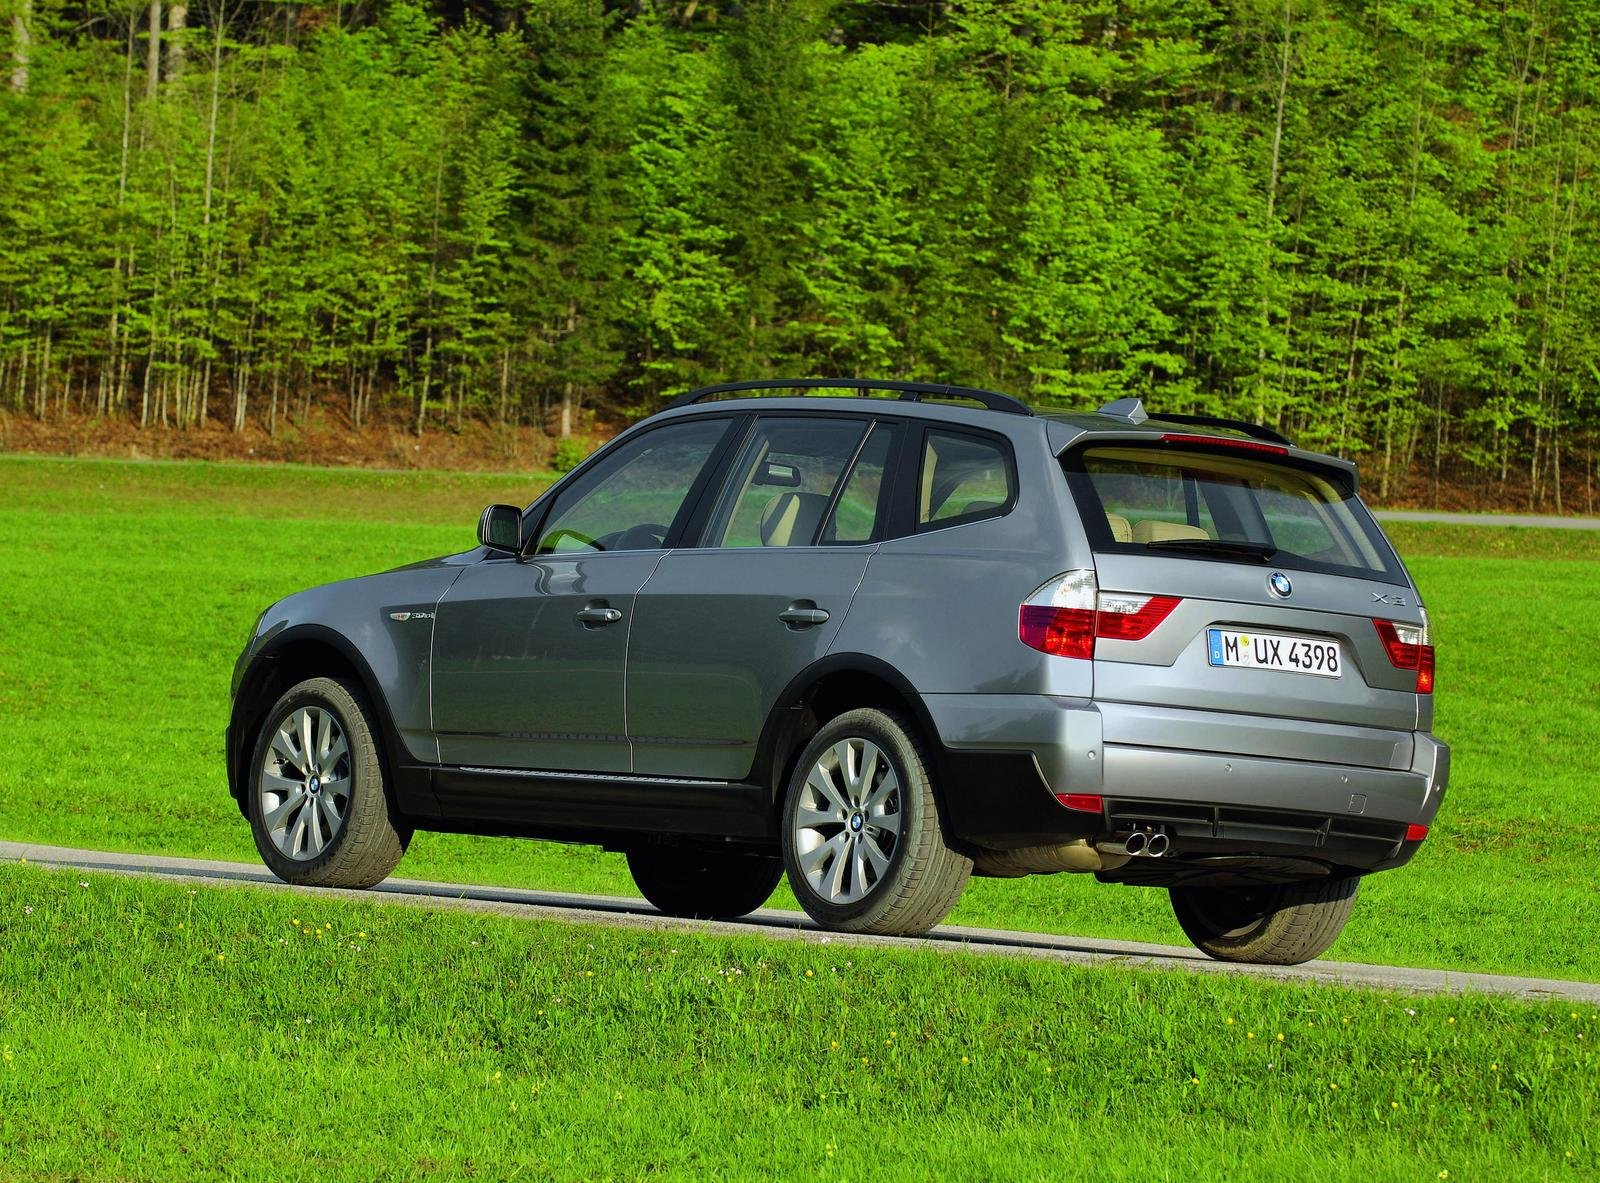 2007 bmw x3 picture 83737 car review top speed. Black Bedroom Furniture Sets. Home Design Ideas